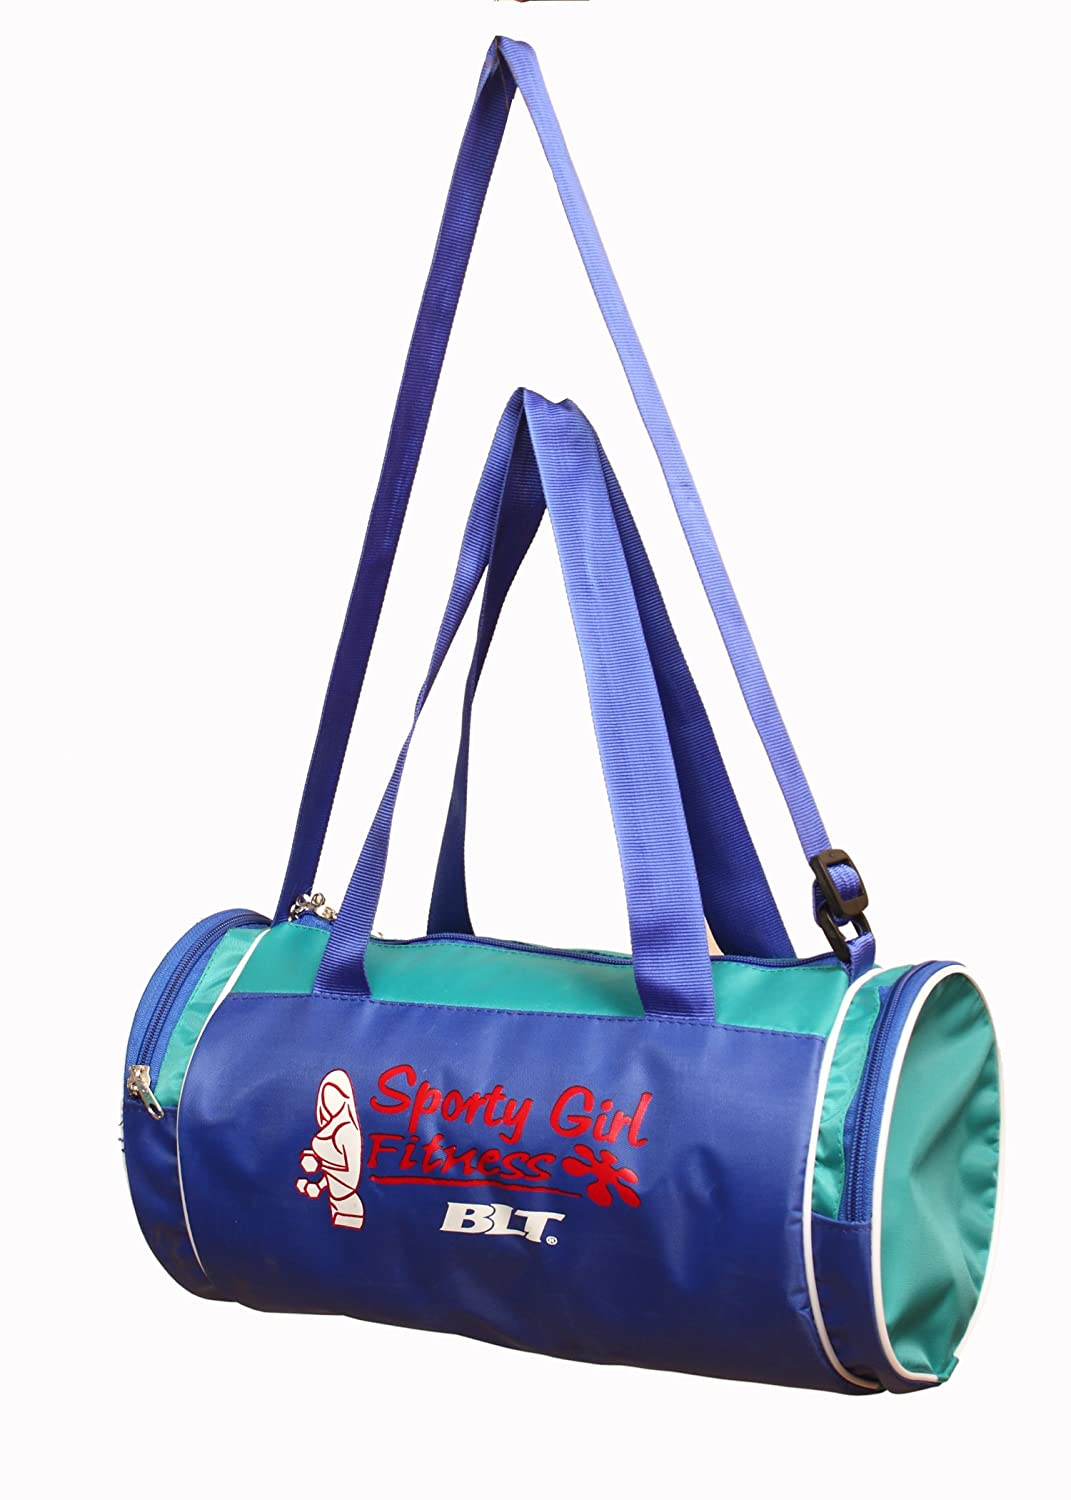 34b908ea7b BLT SPORTY GIRL GYM BAG  Amazon.in  Sports